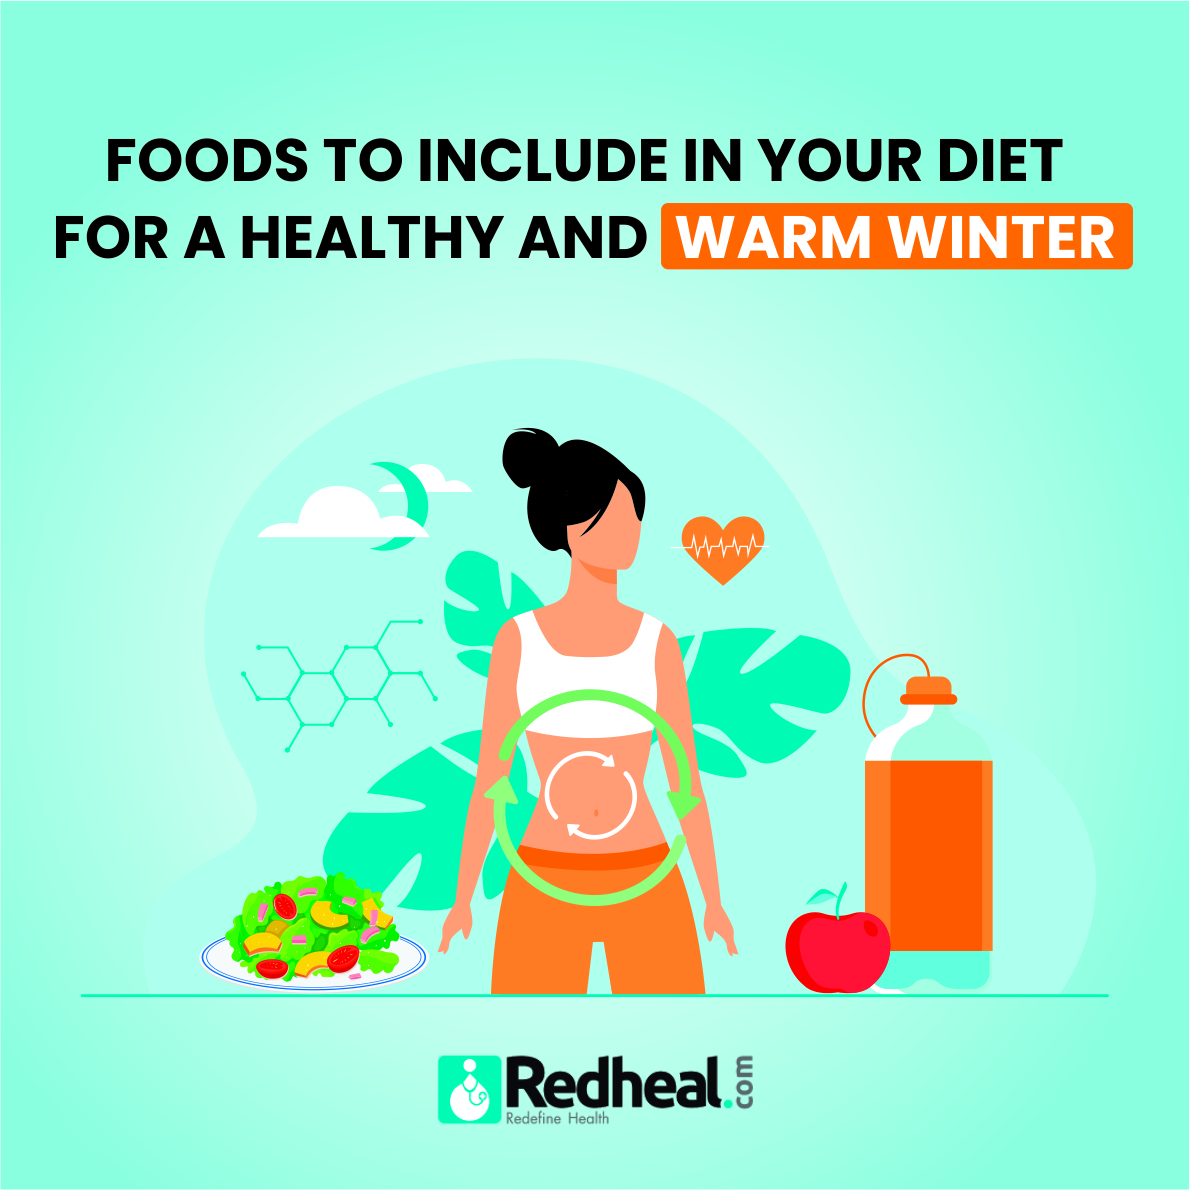 Diet for a healthy and warm winter